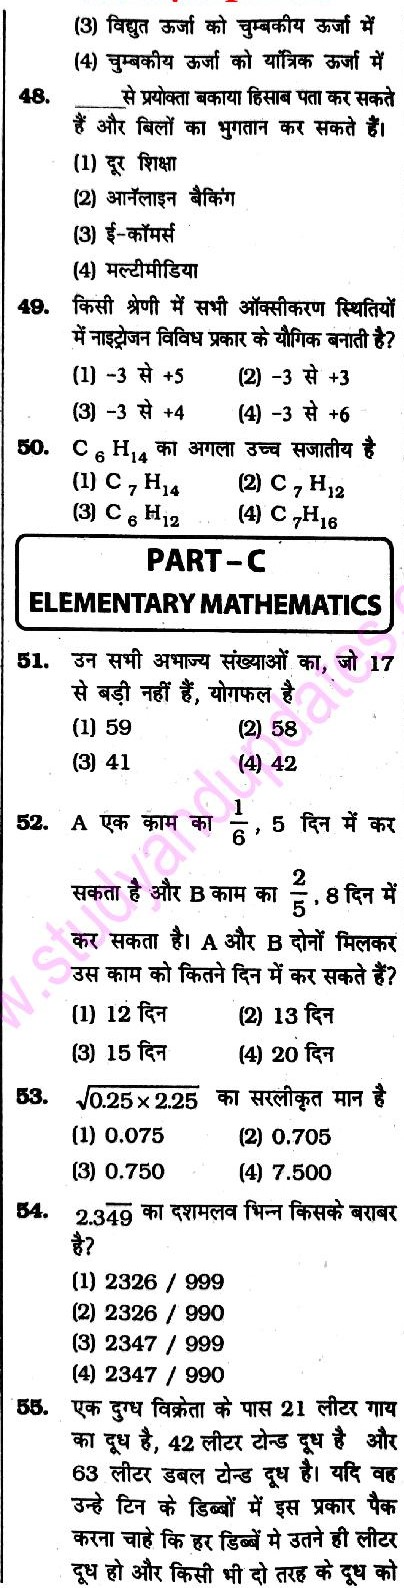 SSC GD 2012  Previous year question paper Pdf   with answer in Hindi Medium  with English Question Held on 22.04.12 Second Shift